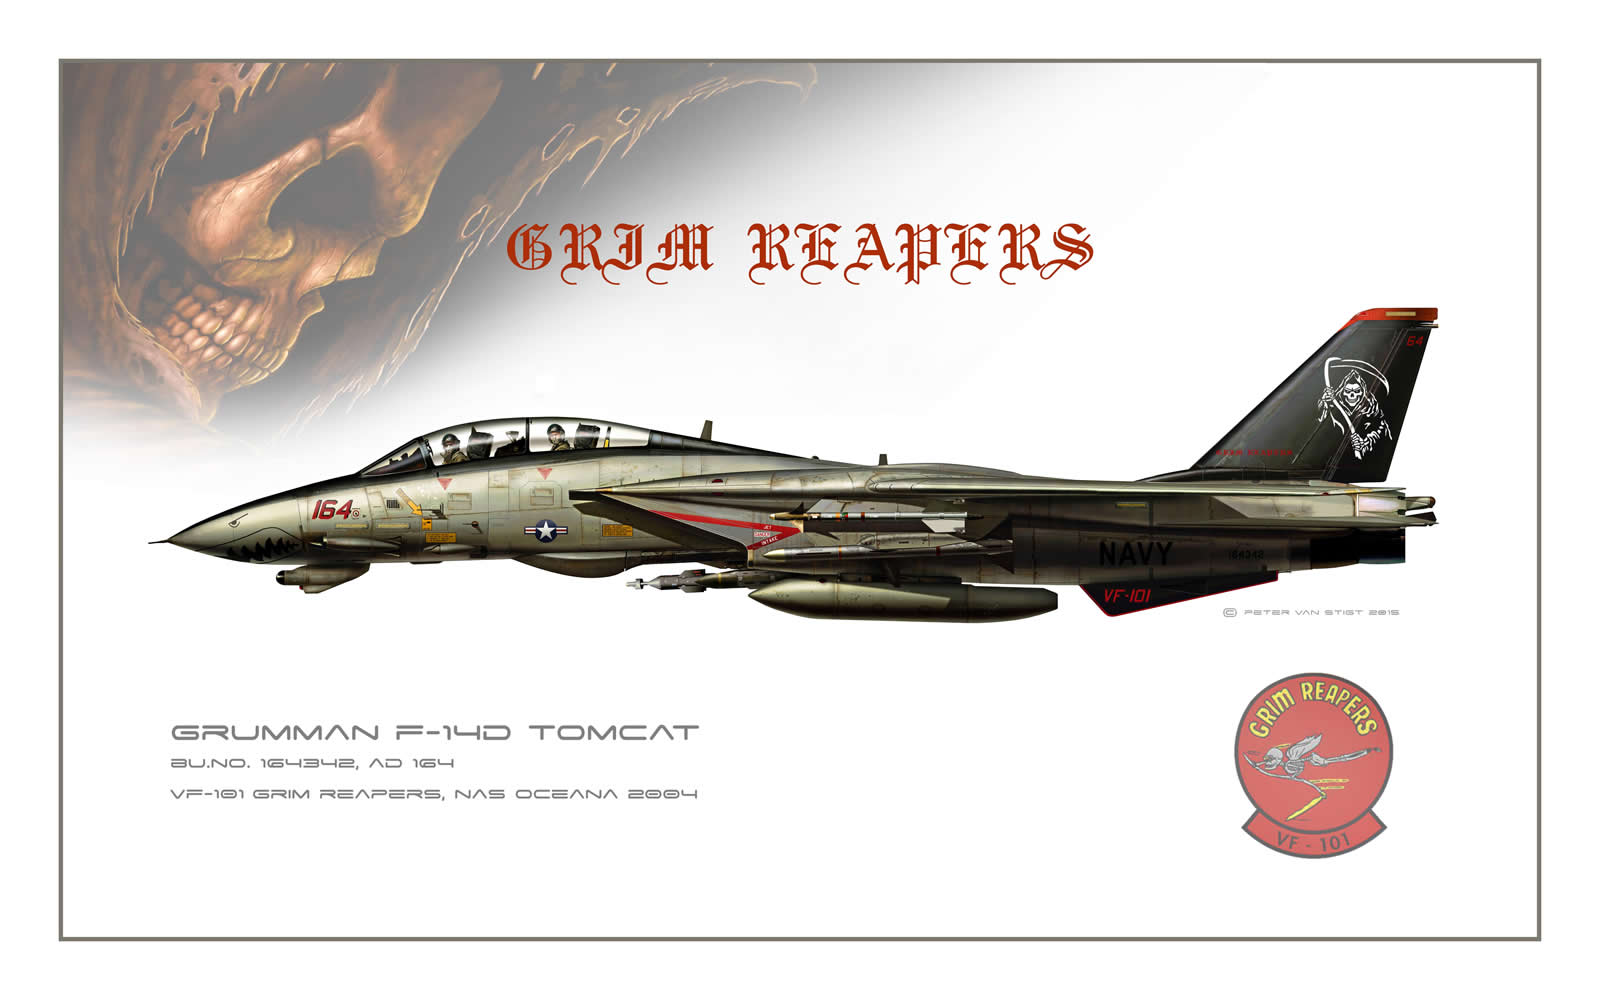 VF-101 Grim Reapers 2004 F-14 Tomcat Profile